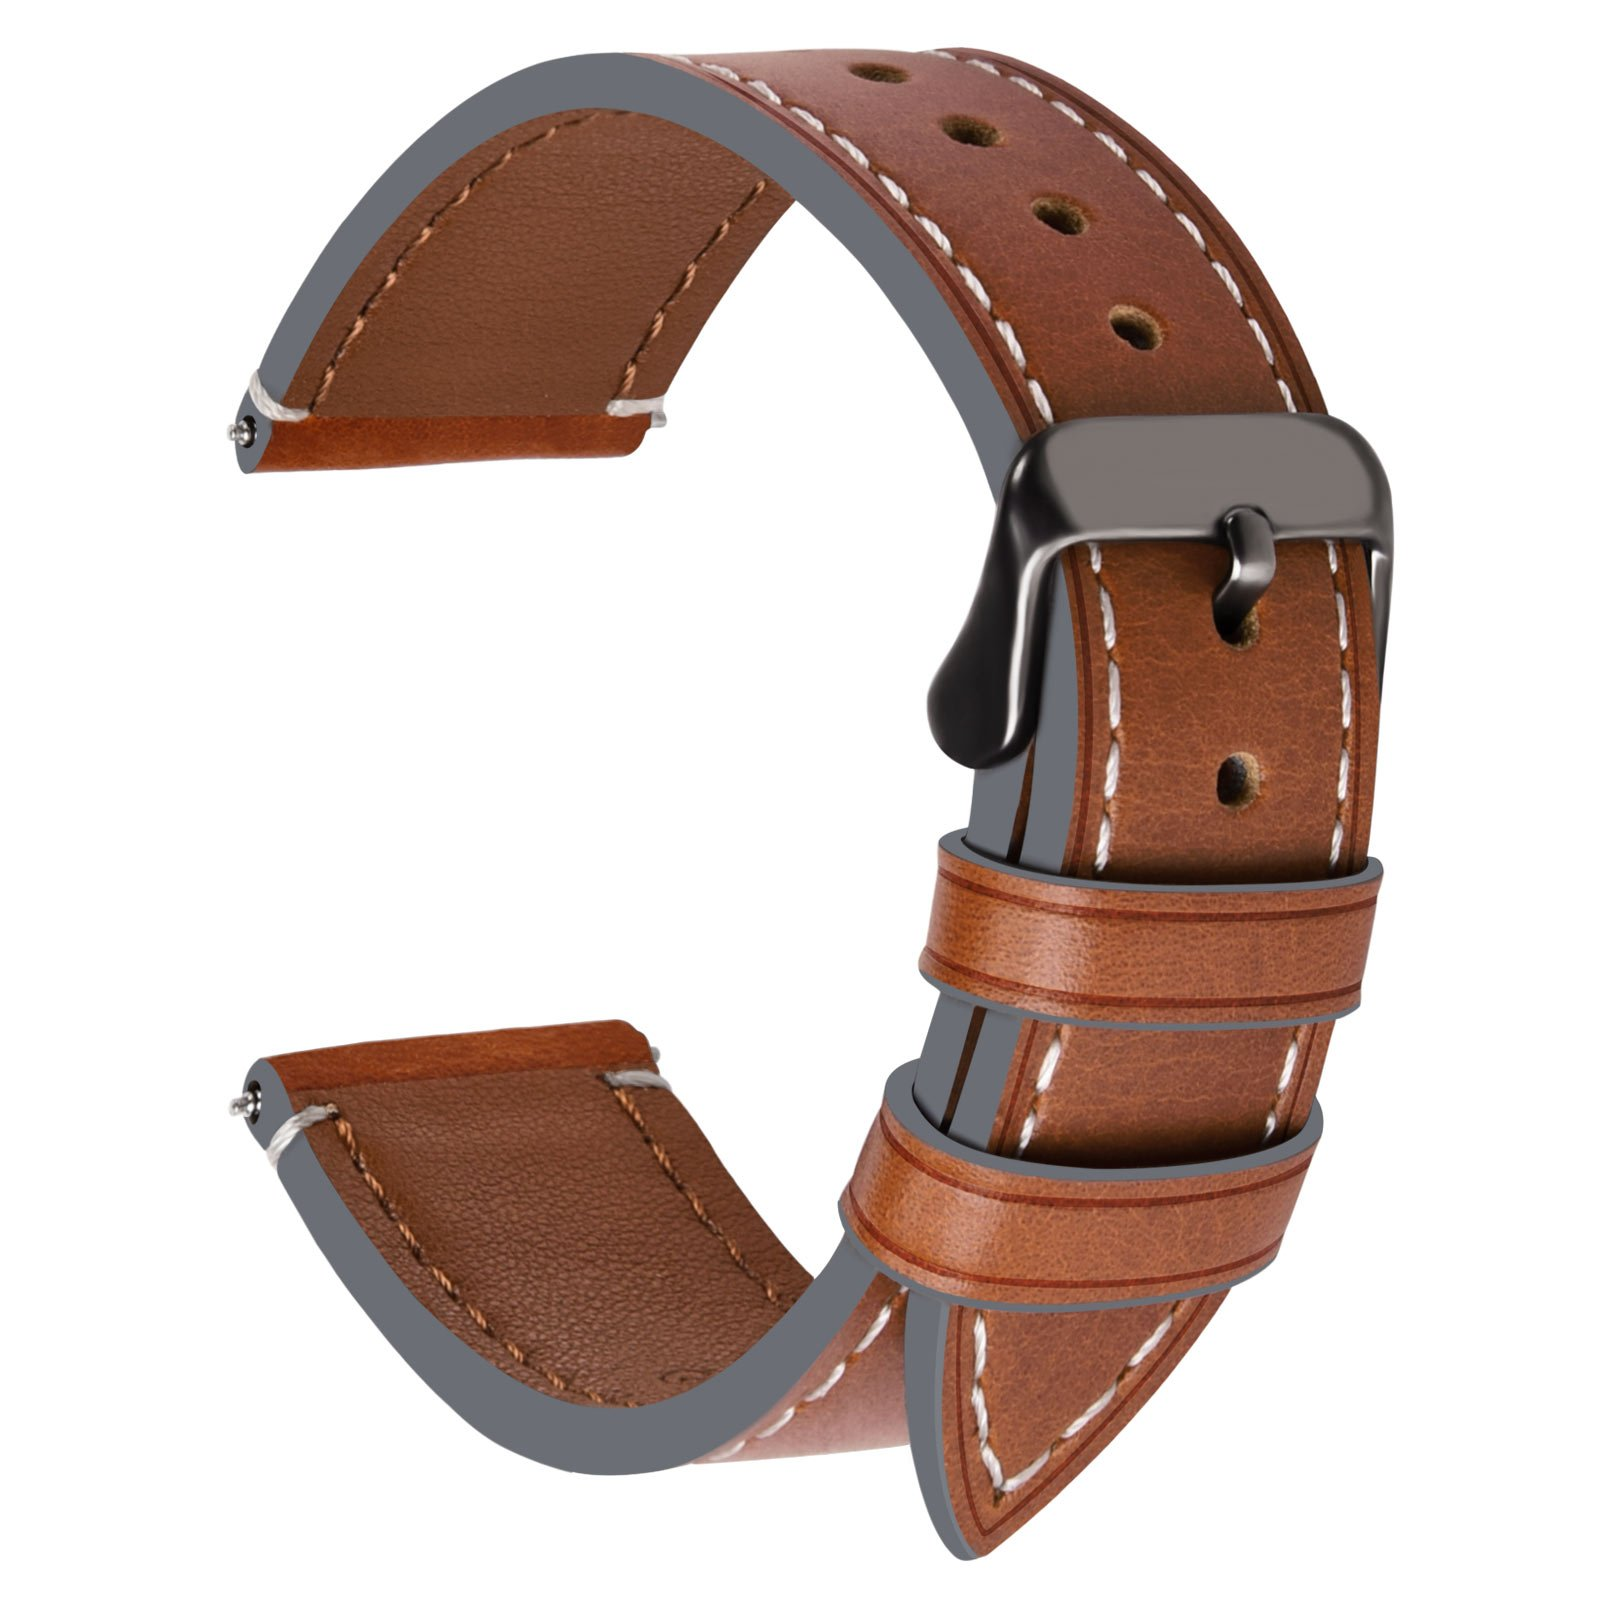 24mm 22mm 20mm 18mm Watch Bands,Fullmosa 4 Colors Top Leather Huawei Watch 1st Watch Band/Strap for Men Women, 18mm Dark Brown + Smoky Grey Buckle